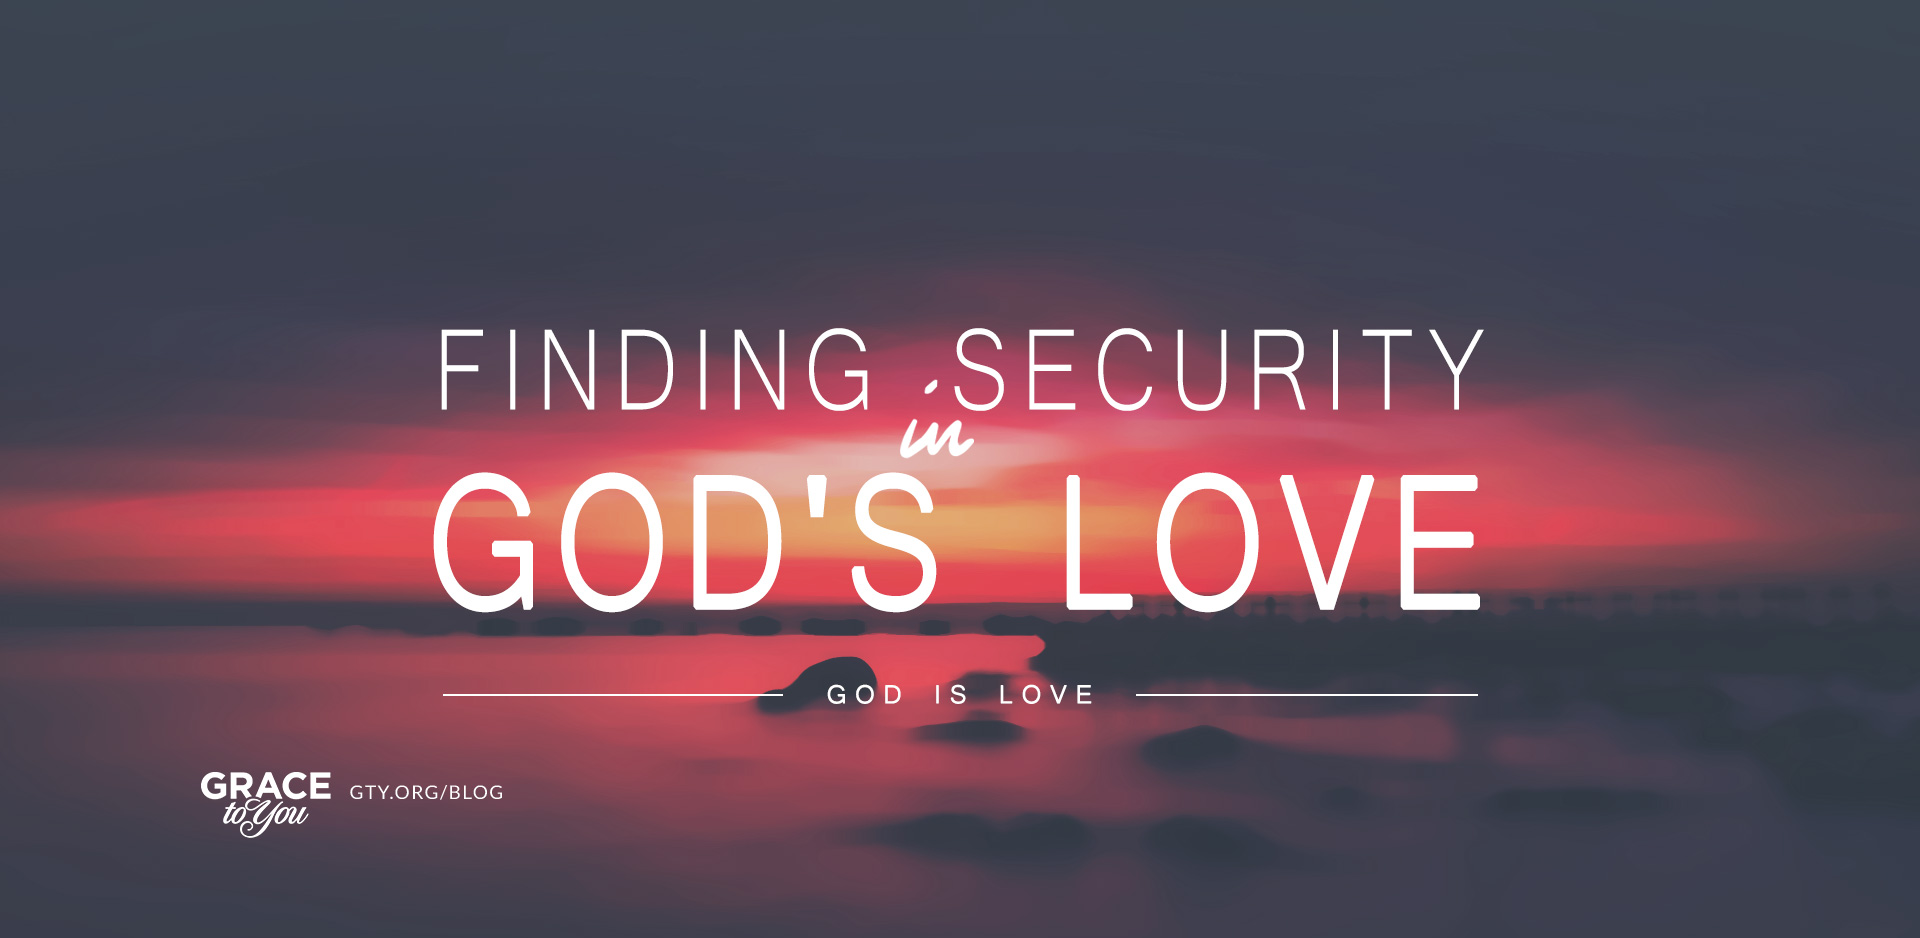 Finding Security in God's Love